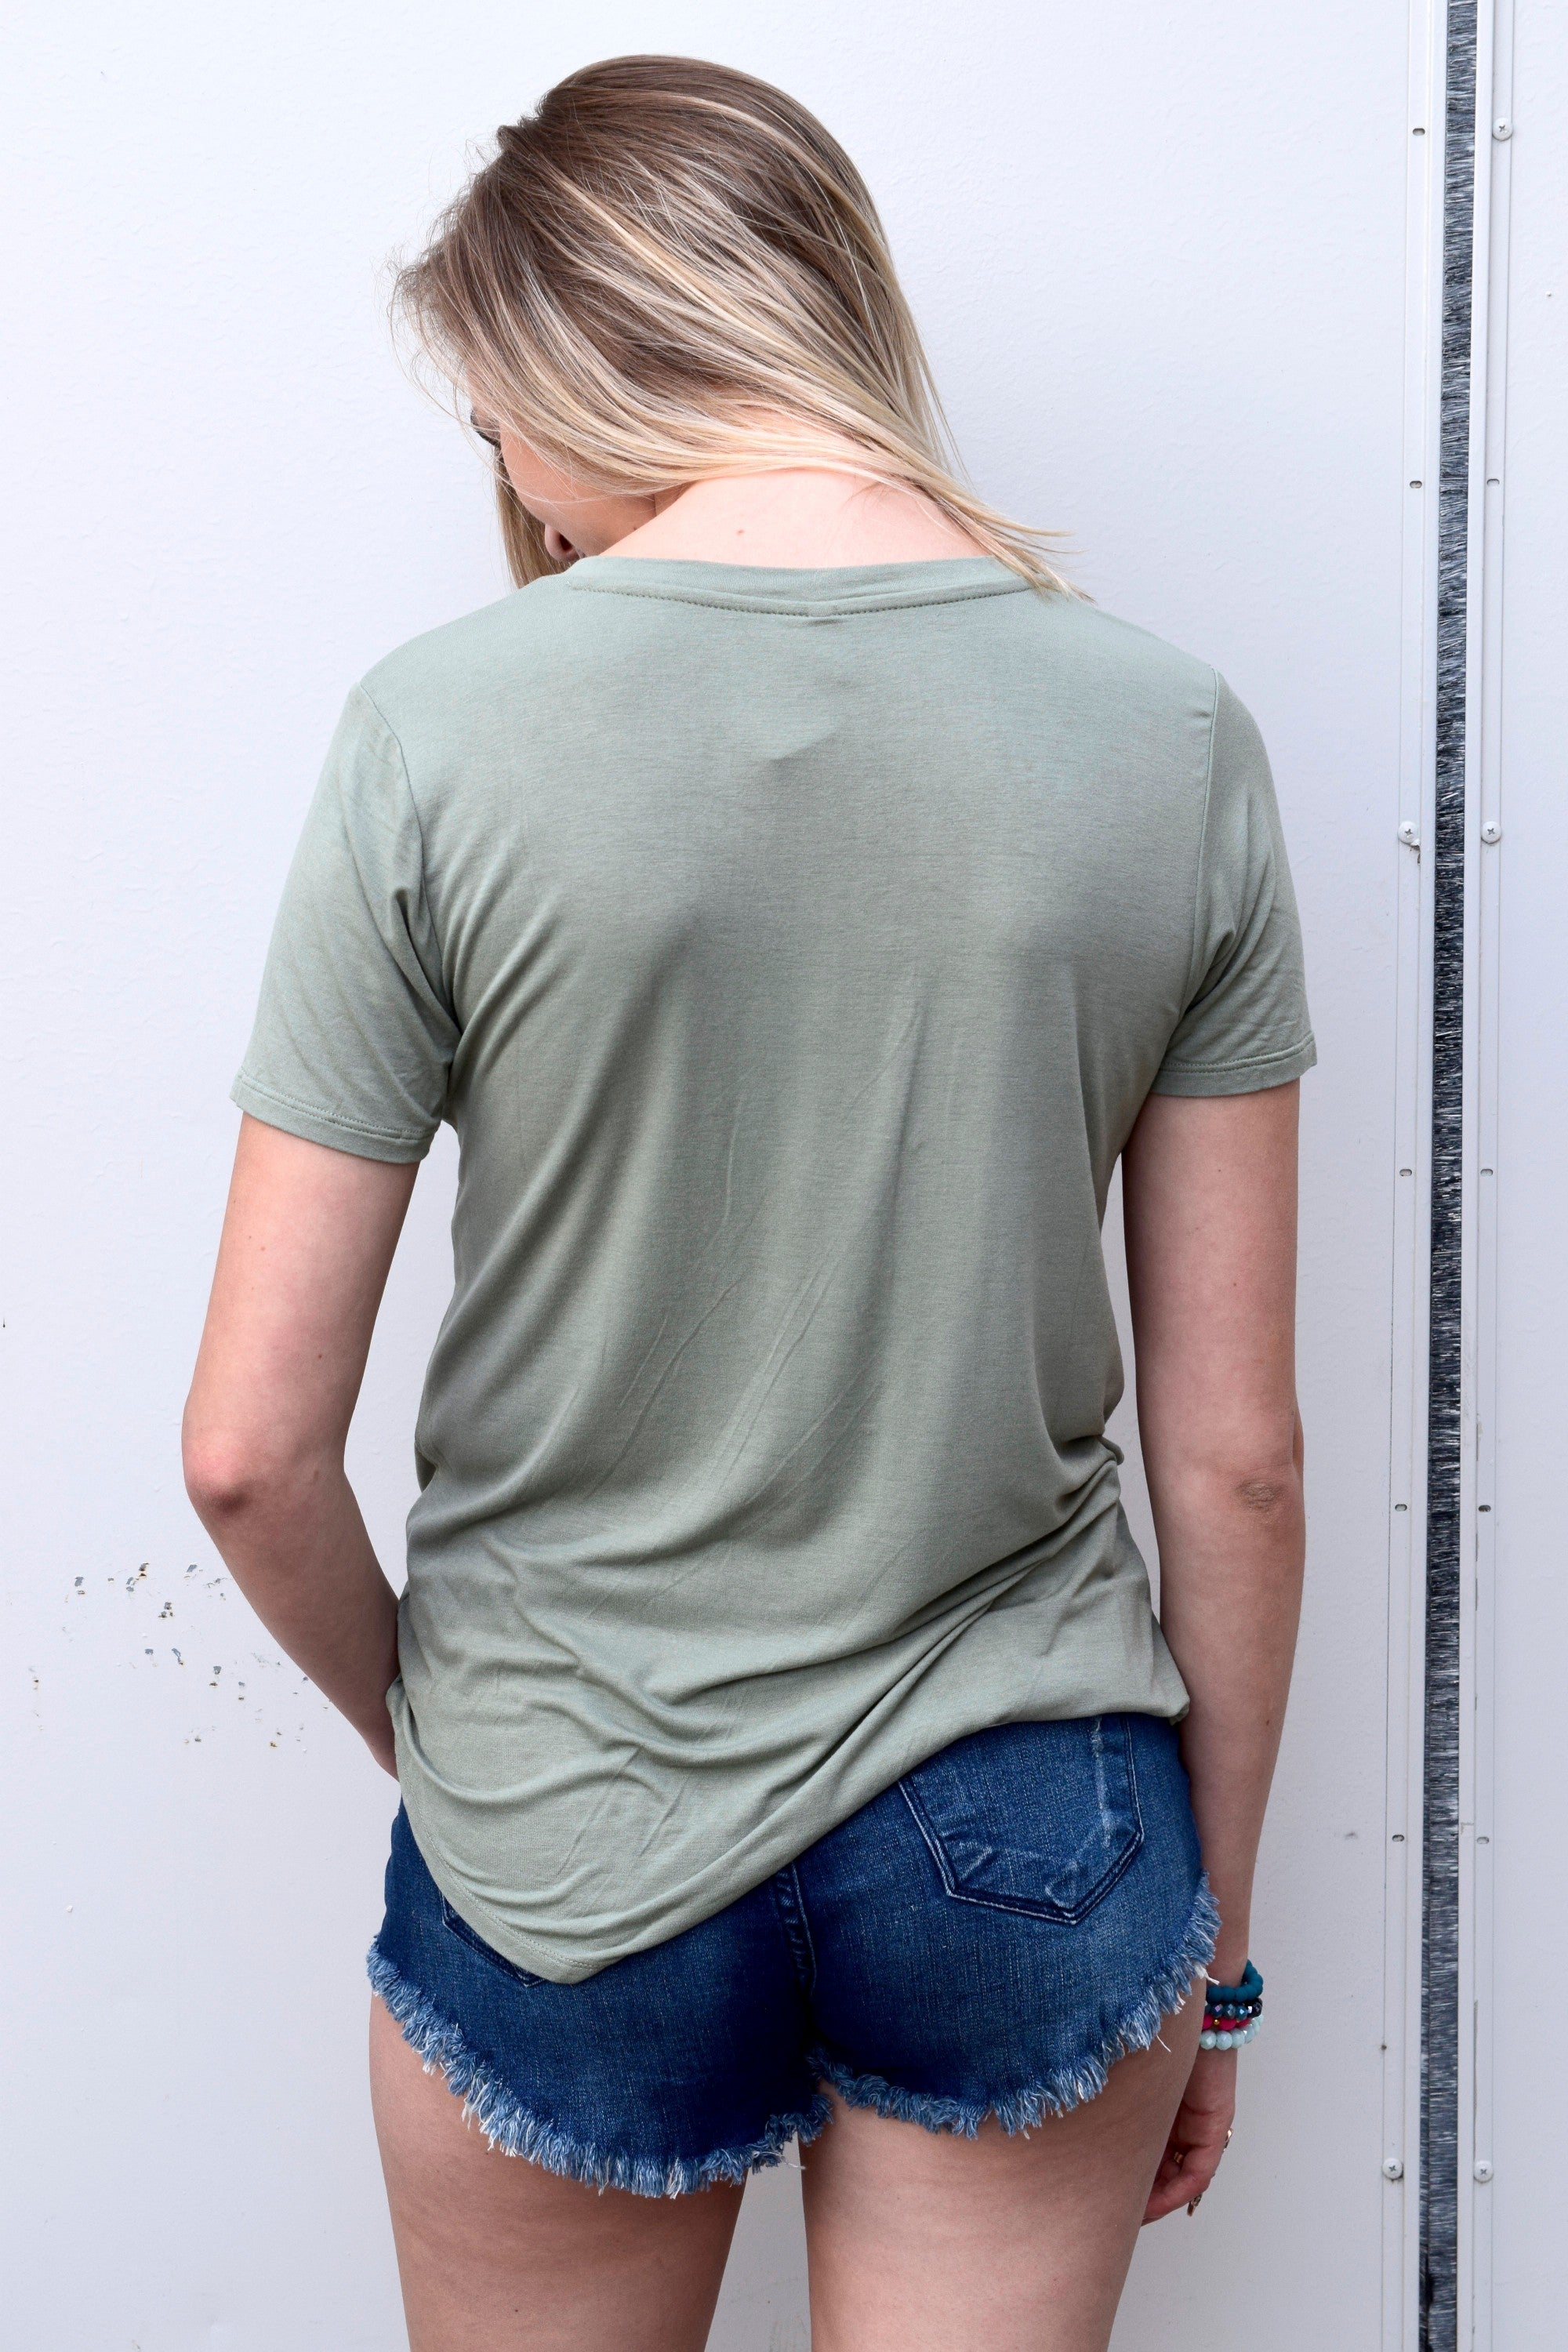 SLEEK JERSEY POCKET TEE: PALE SAGE